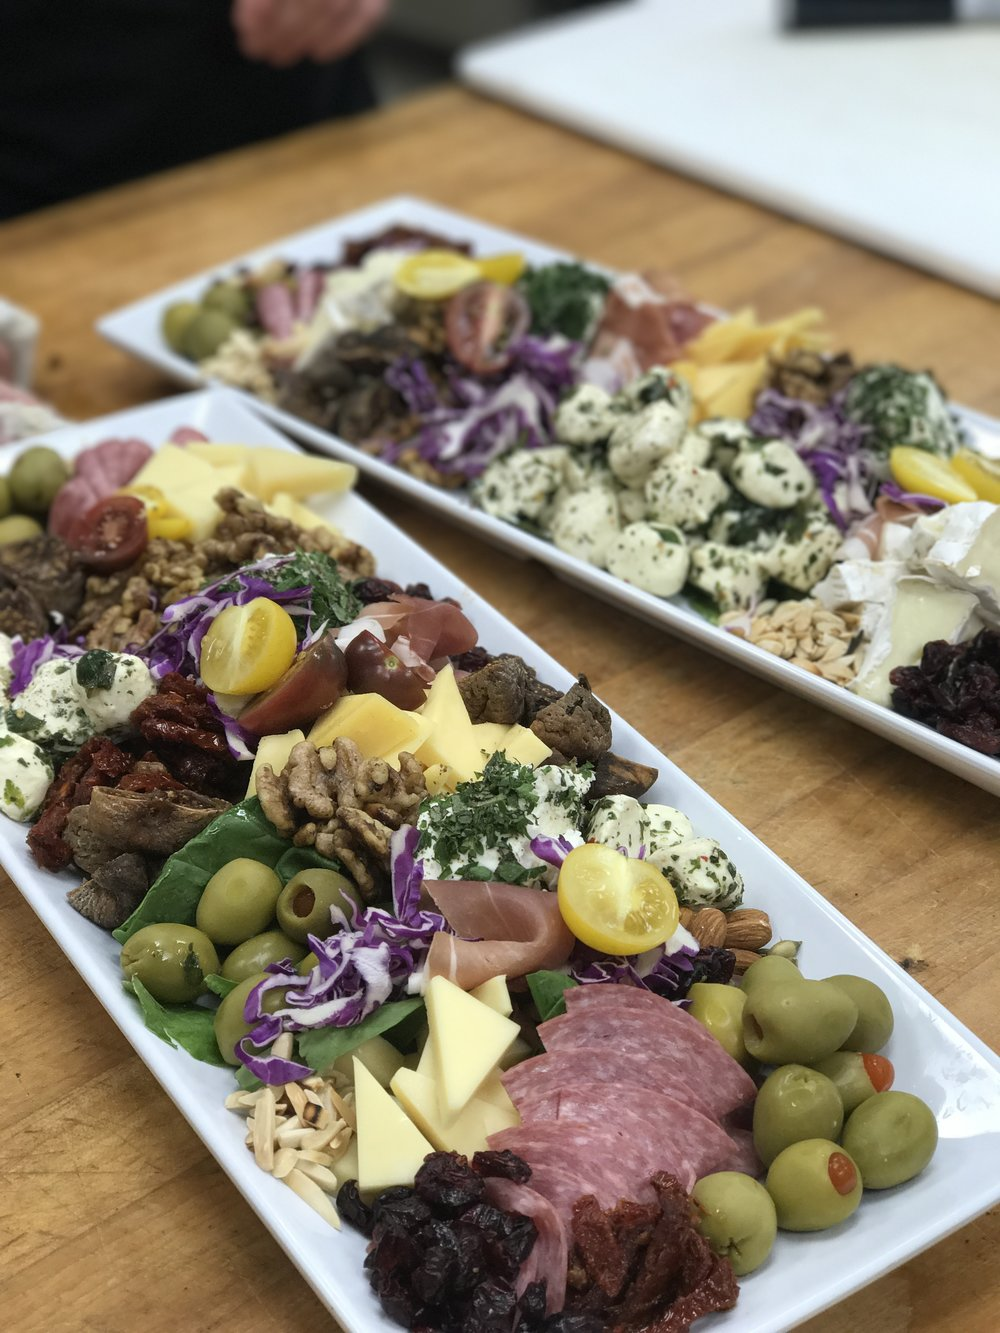 Photo Oct box-lunches-breakfast-buffett-appetizers-full-buffett-office-catering-lenexa-mission-hills-plaza-kcmo-organic7.jpg